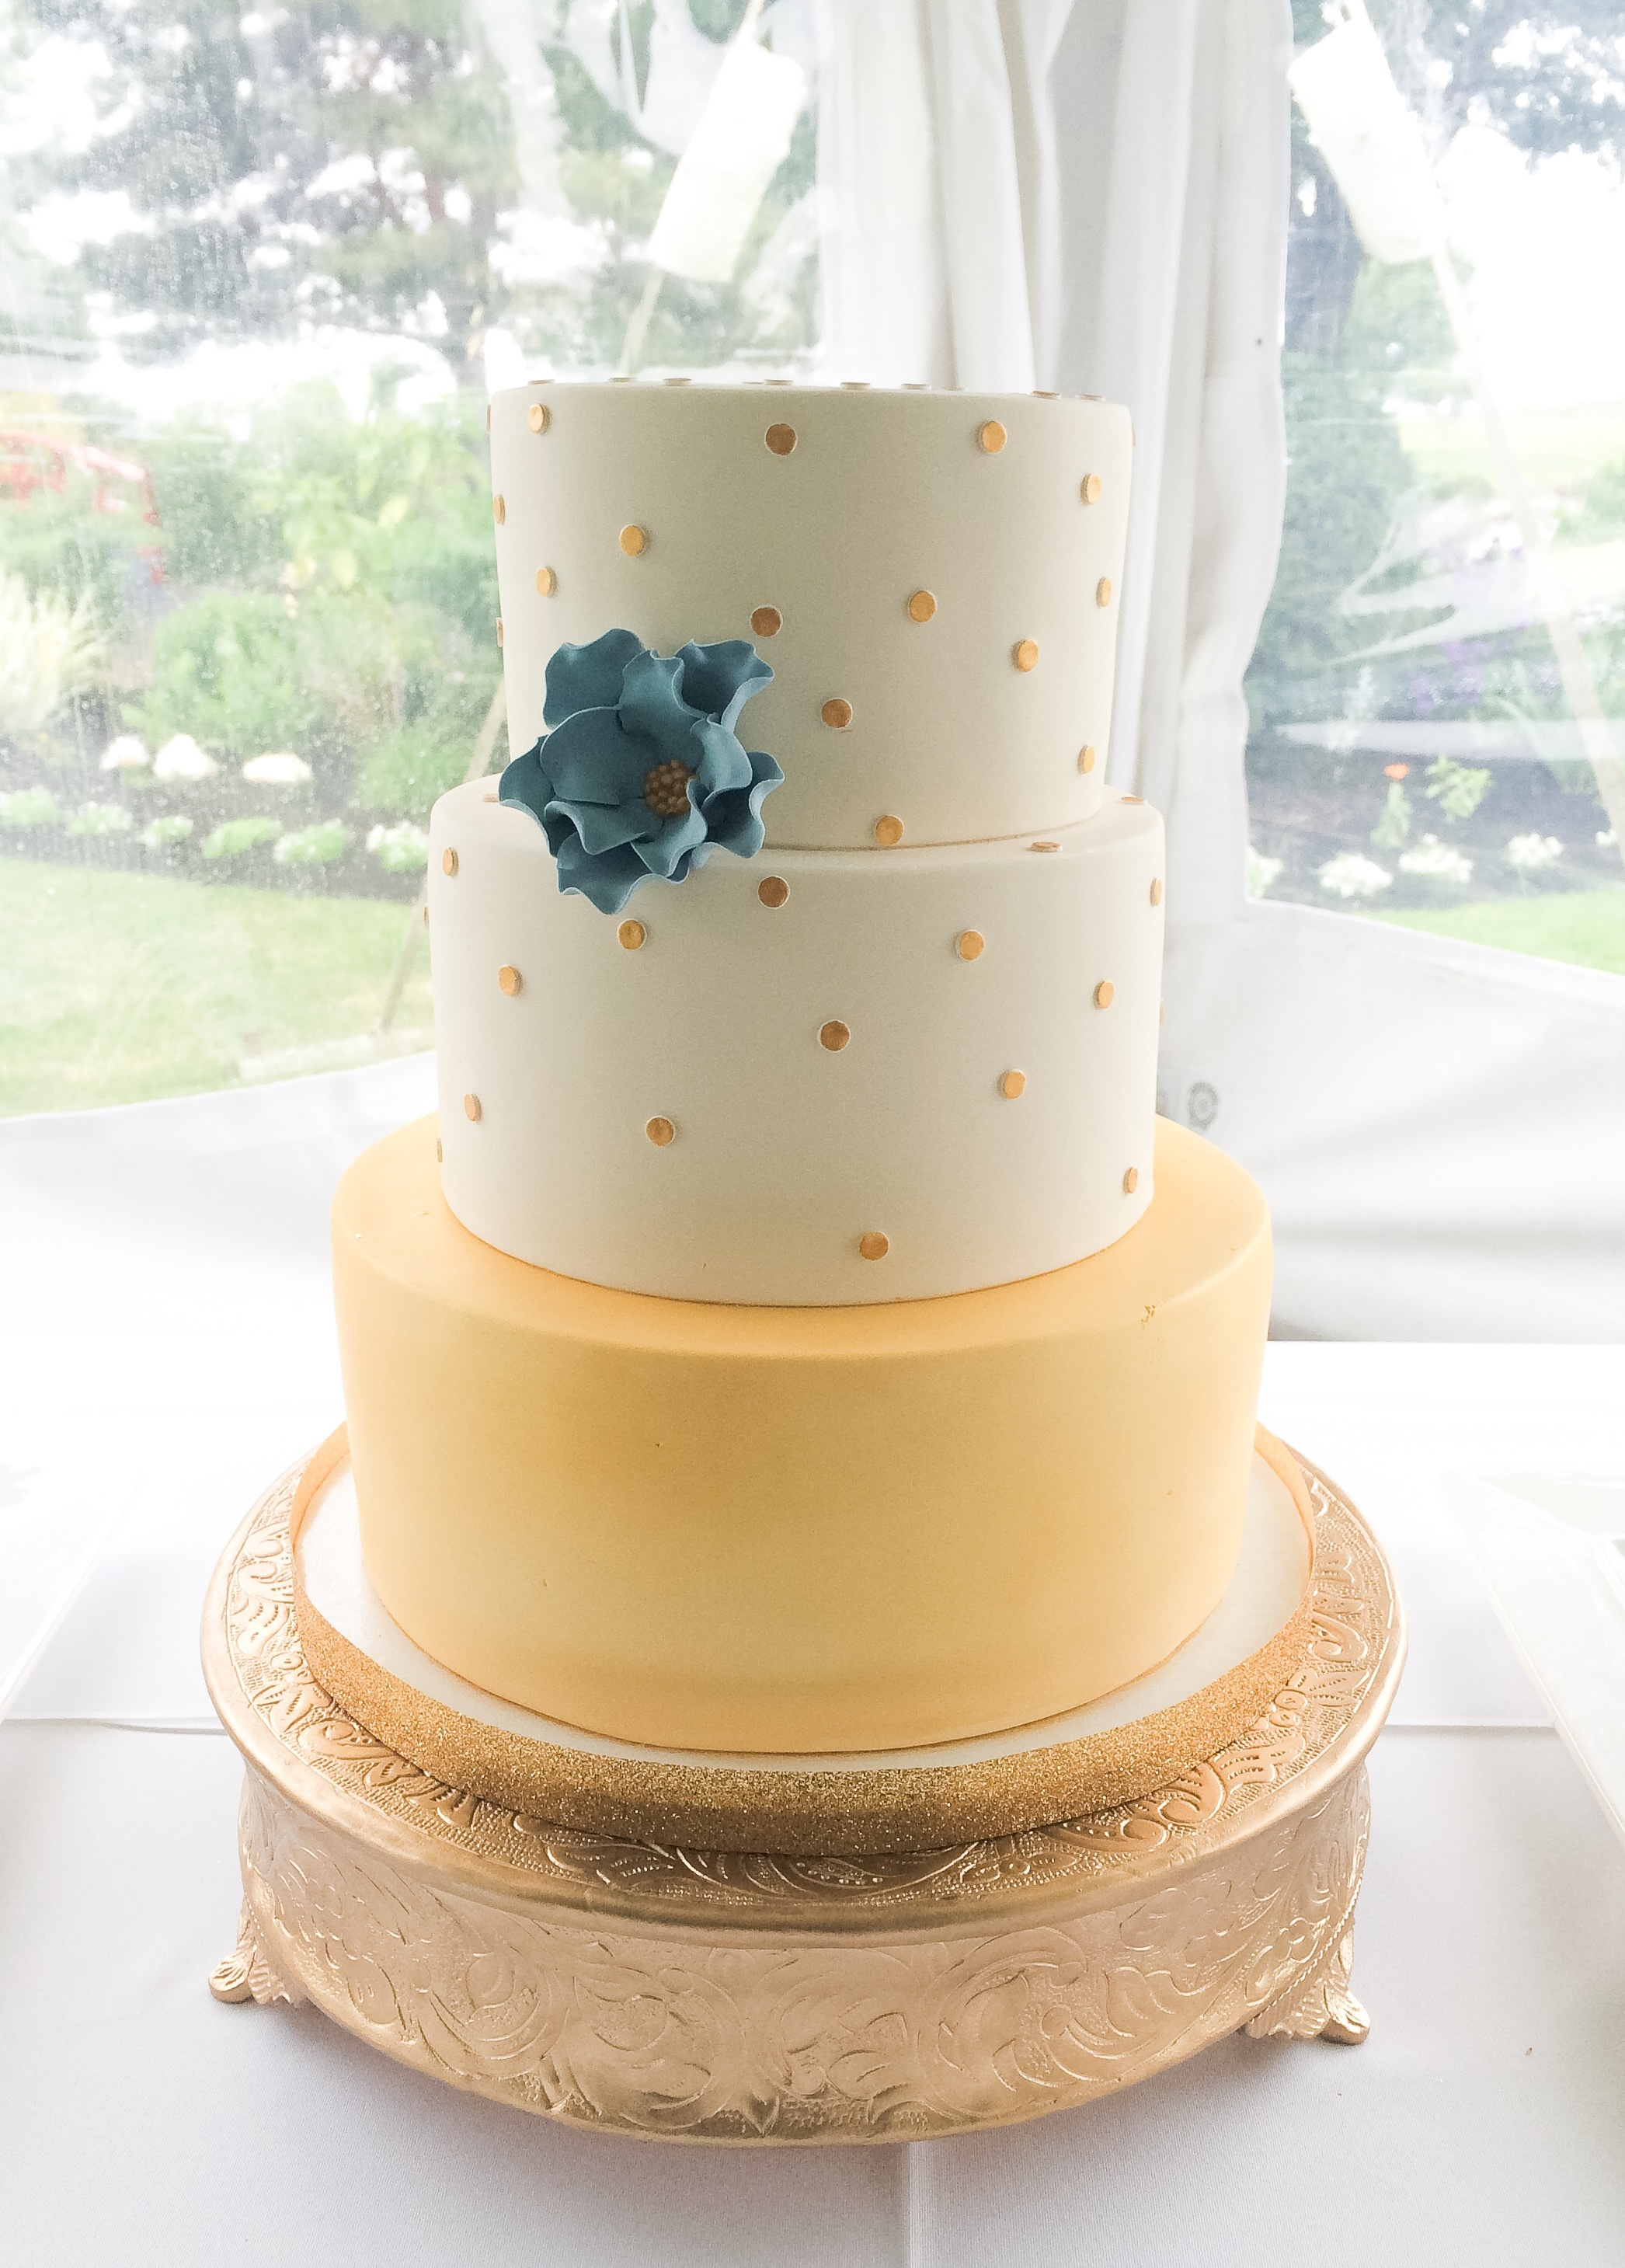 White & gold polka dot fondant wedding cake